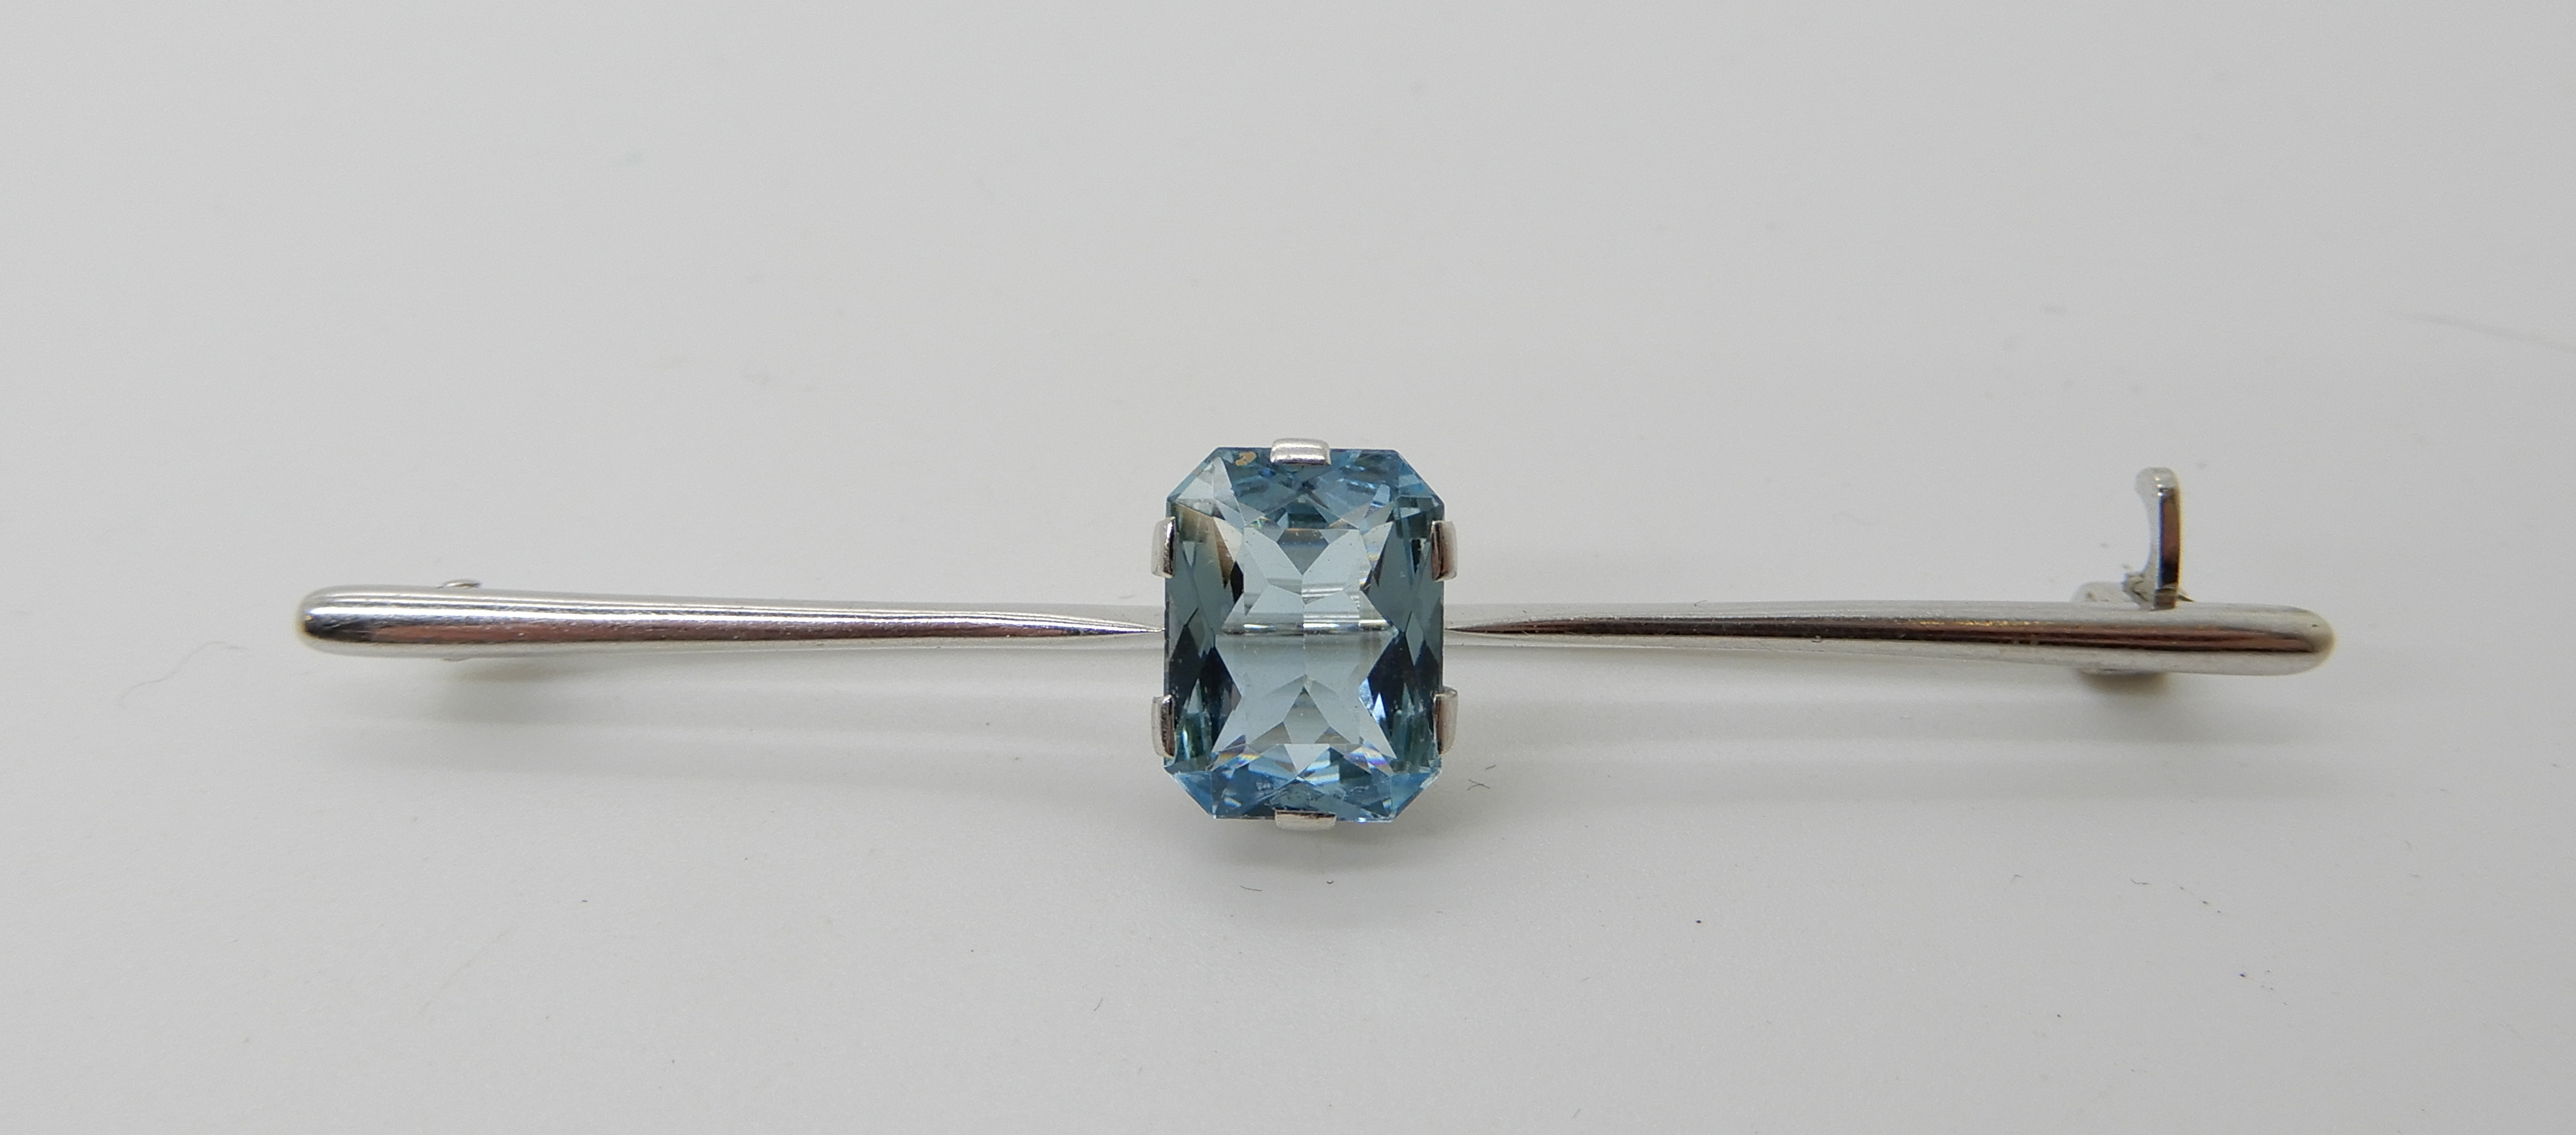 Lot 23 - A 14k white gold aquamarine set bar brooch, length 6.2cm, weight 3.7gms Condition Report: